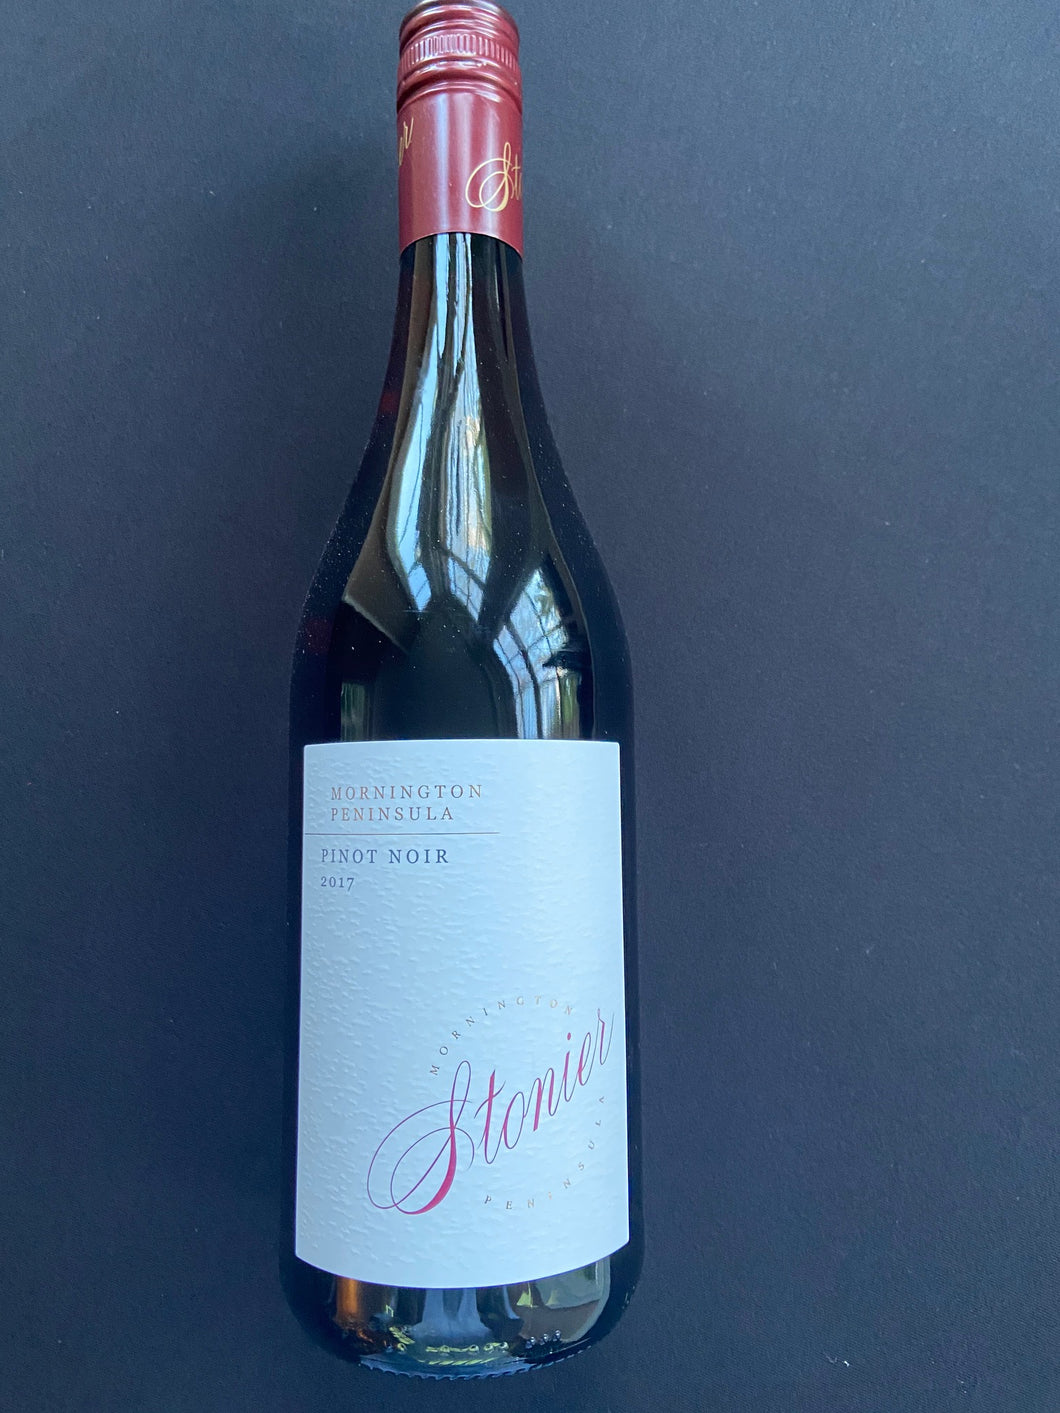 Stonier Pinot Noir 2017, Mornington Peninsula Australia